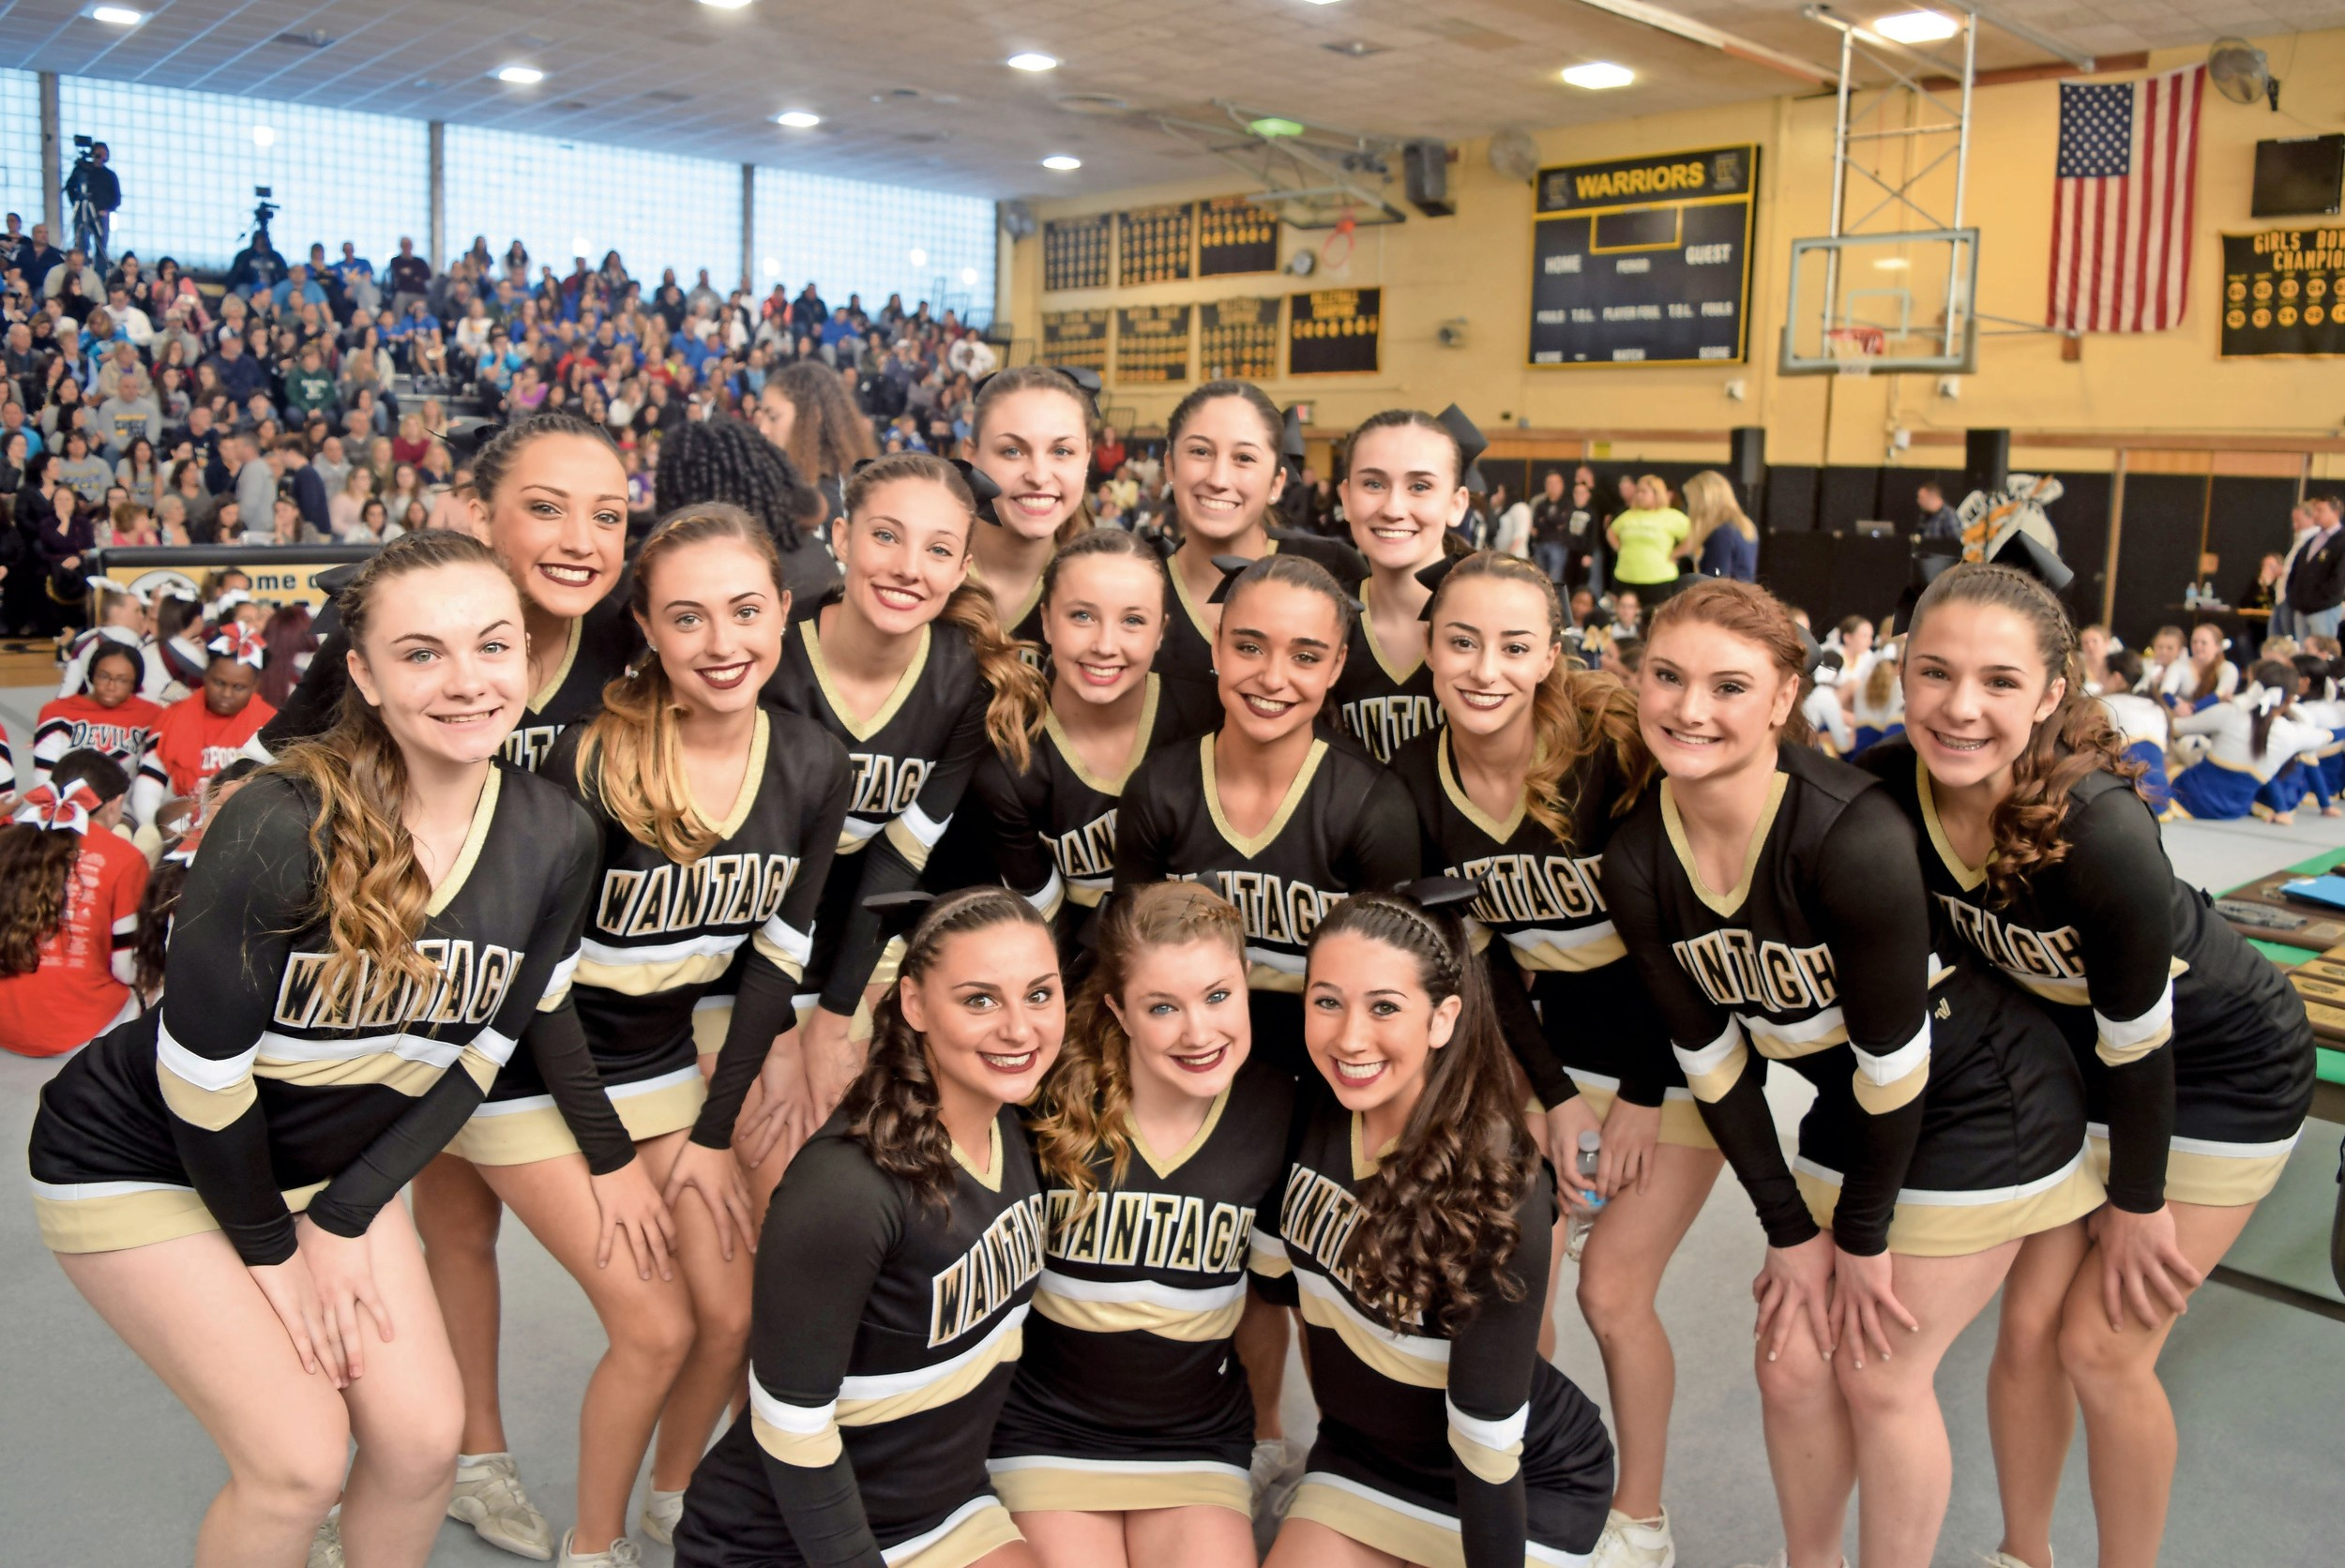 The Wantagh High School cheerleading team took home a county championship on Feb. 26, earning it a spot in the New York State Public High School Athletic Association Cheer Championships this weekend.